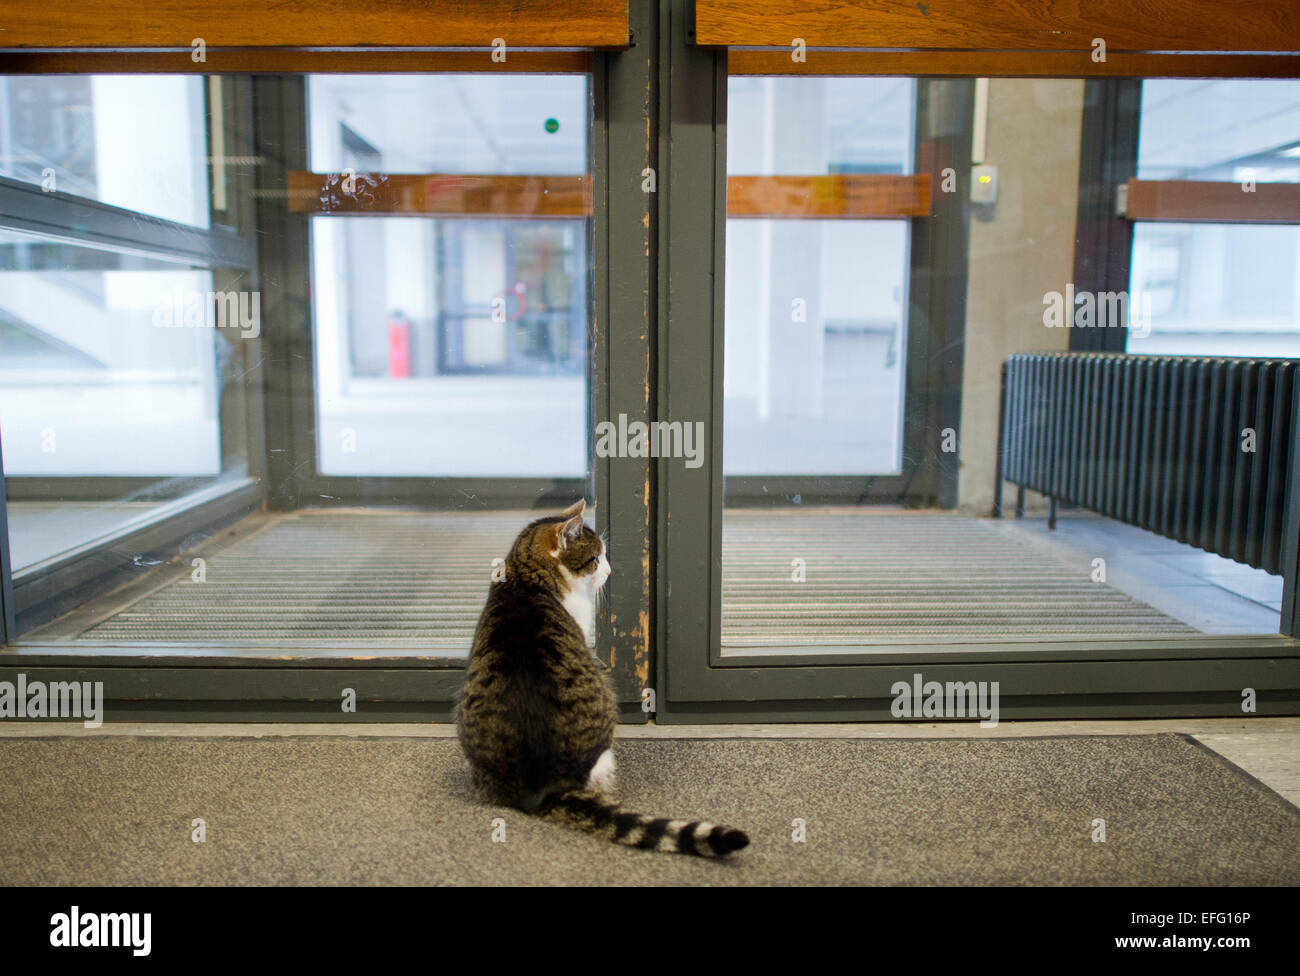 Hildesheim, Germany. 02nd Feb, 2015. Cat 'Fraeulein Sinner' sits in the University of Hildesheim and waits for someone Stock Photo